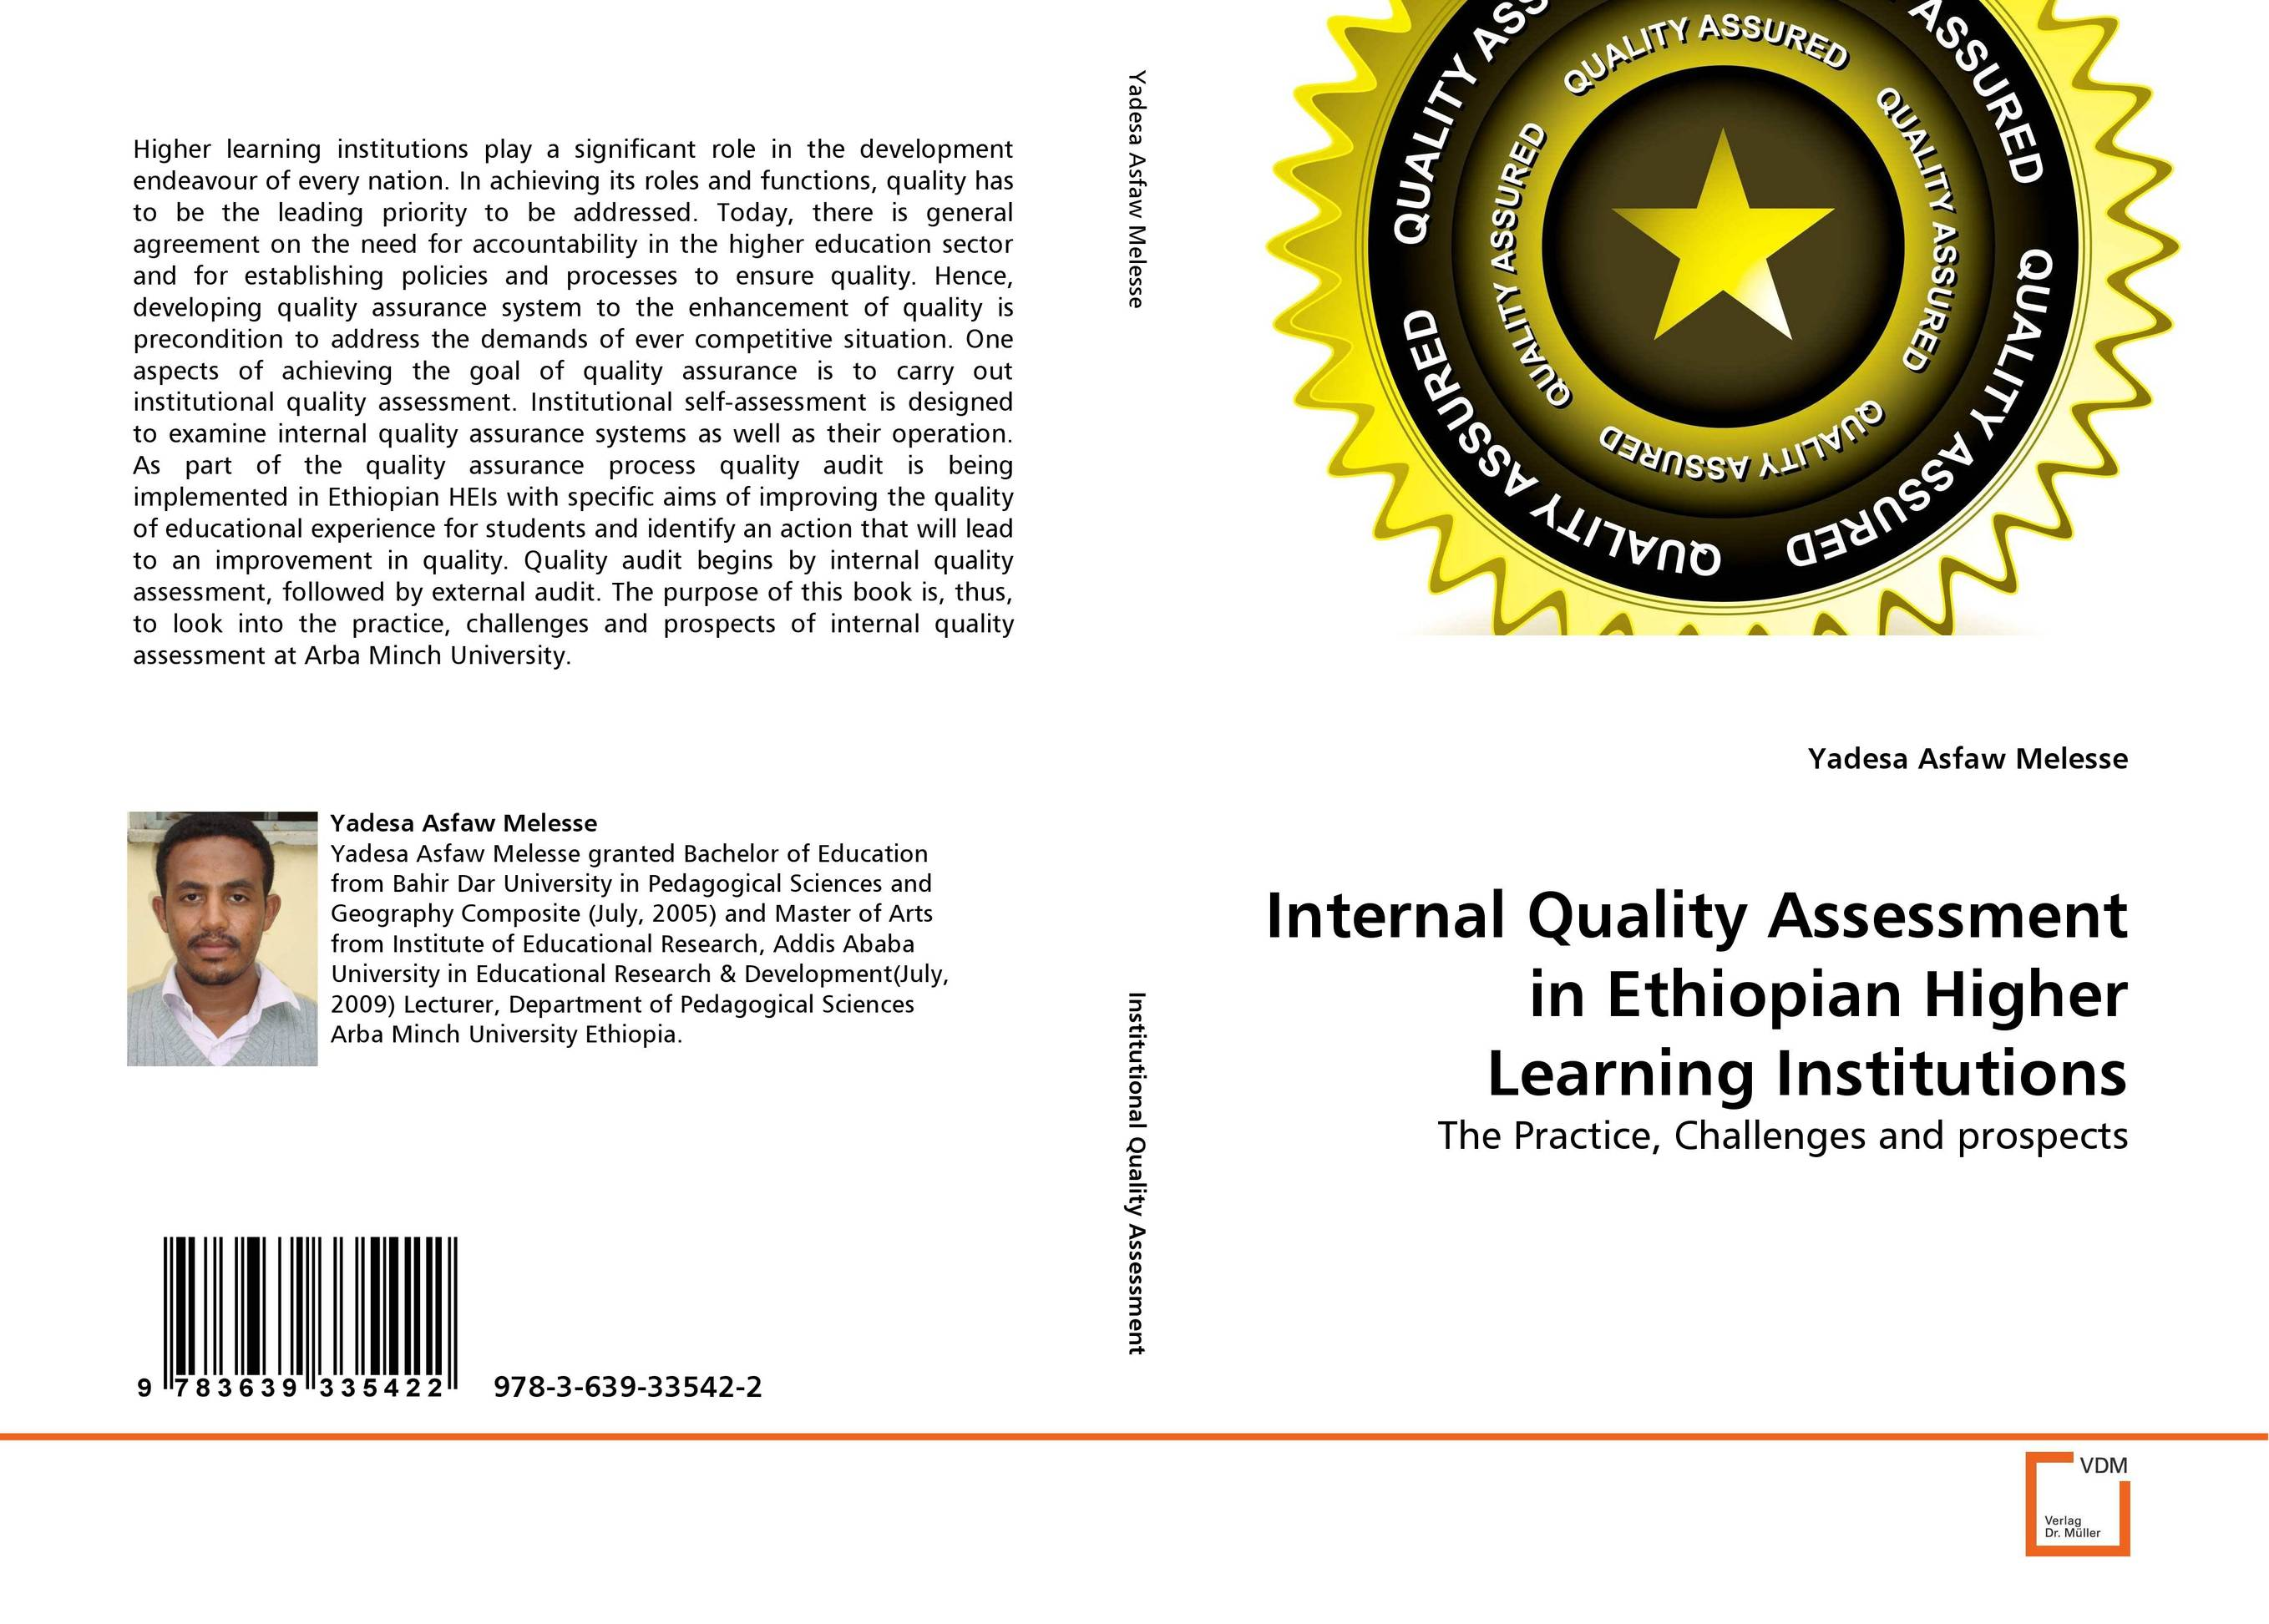 Internal Quality Assessment in Ethiopian Higher Learning Institutions aligning university quality assurance and graduate employability